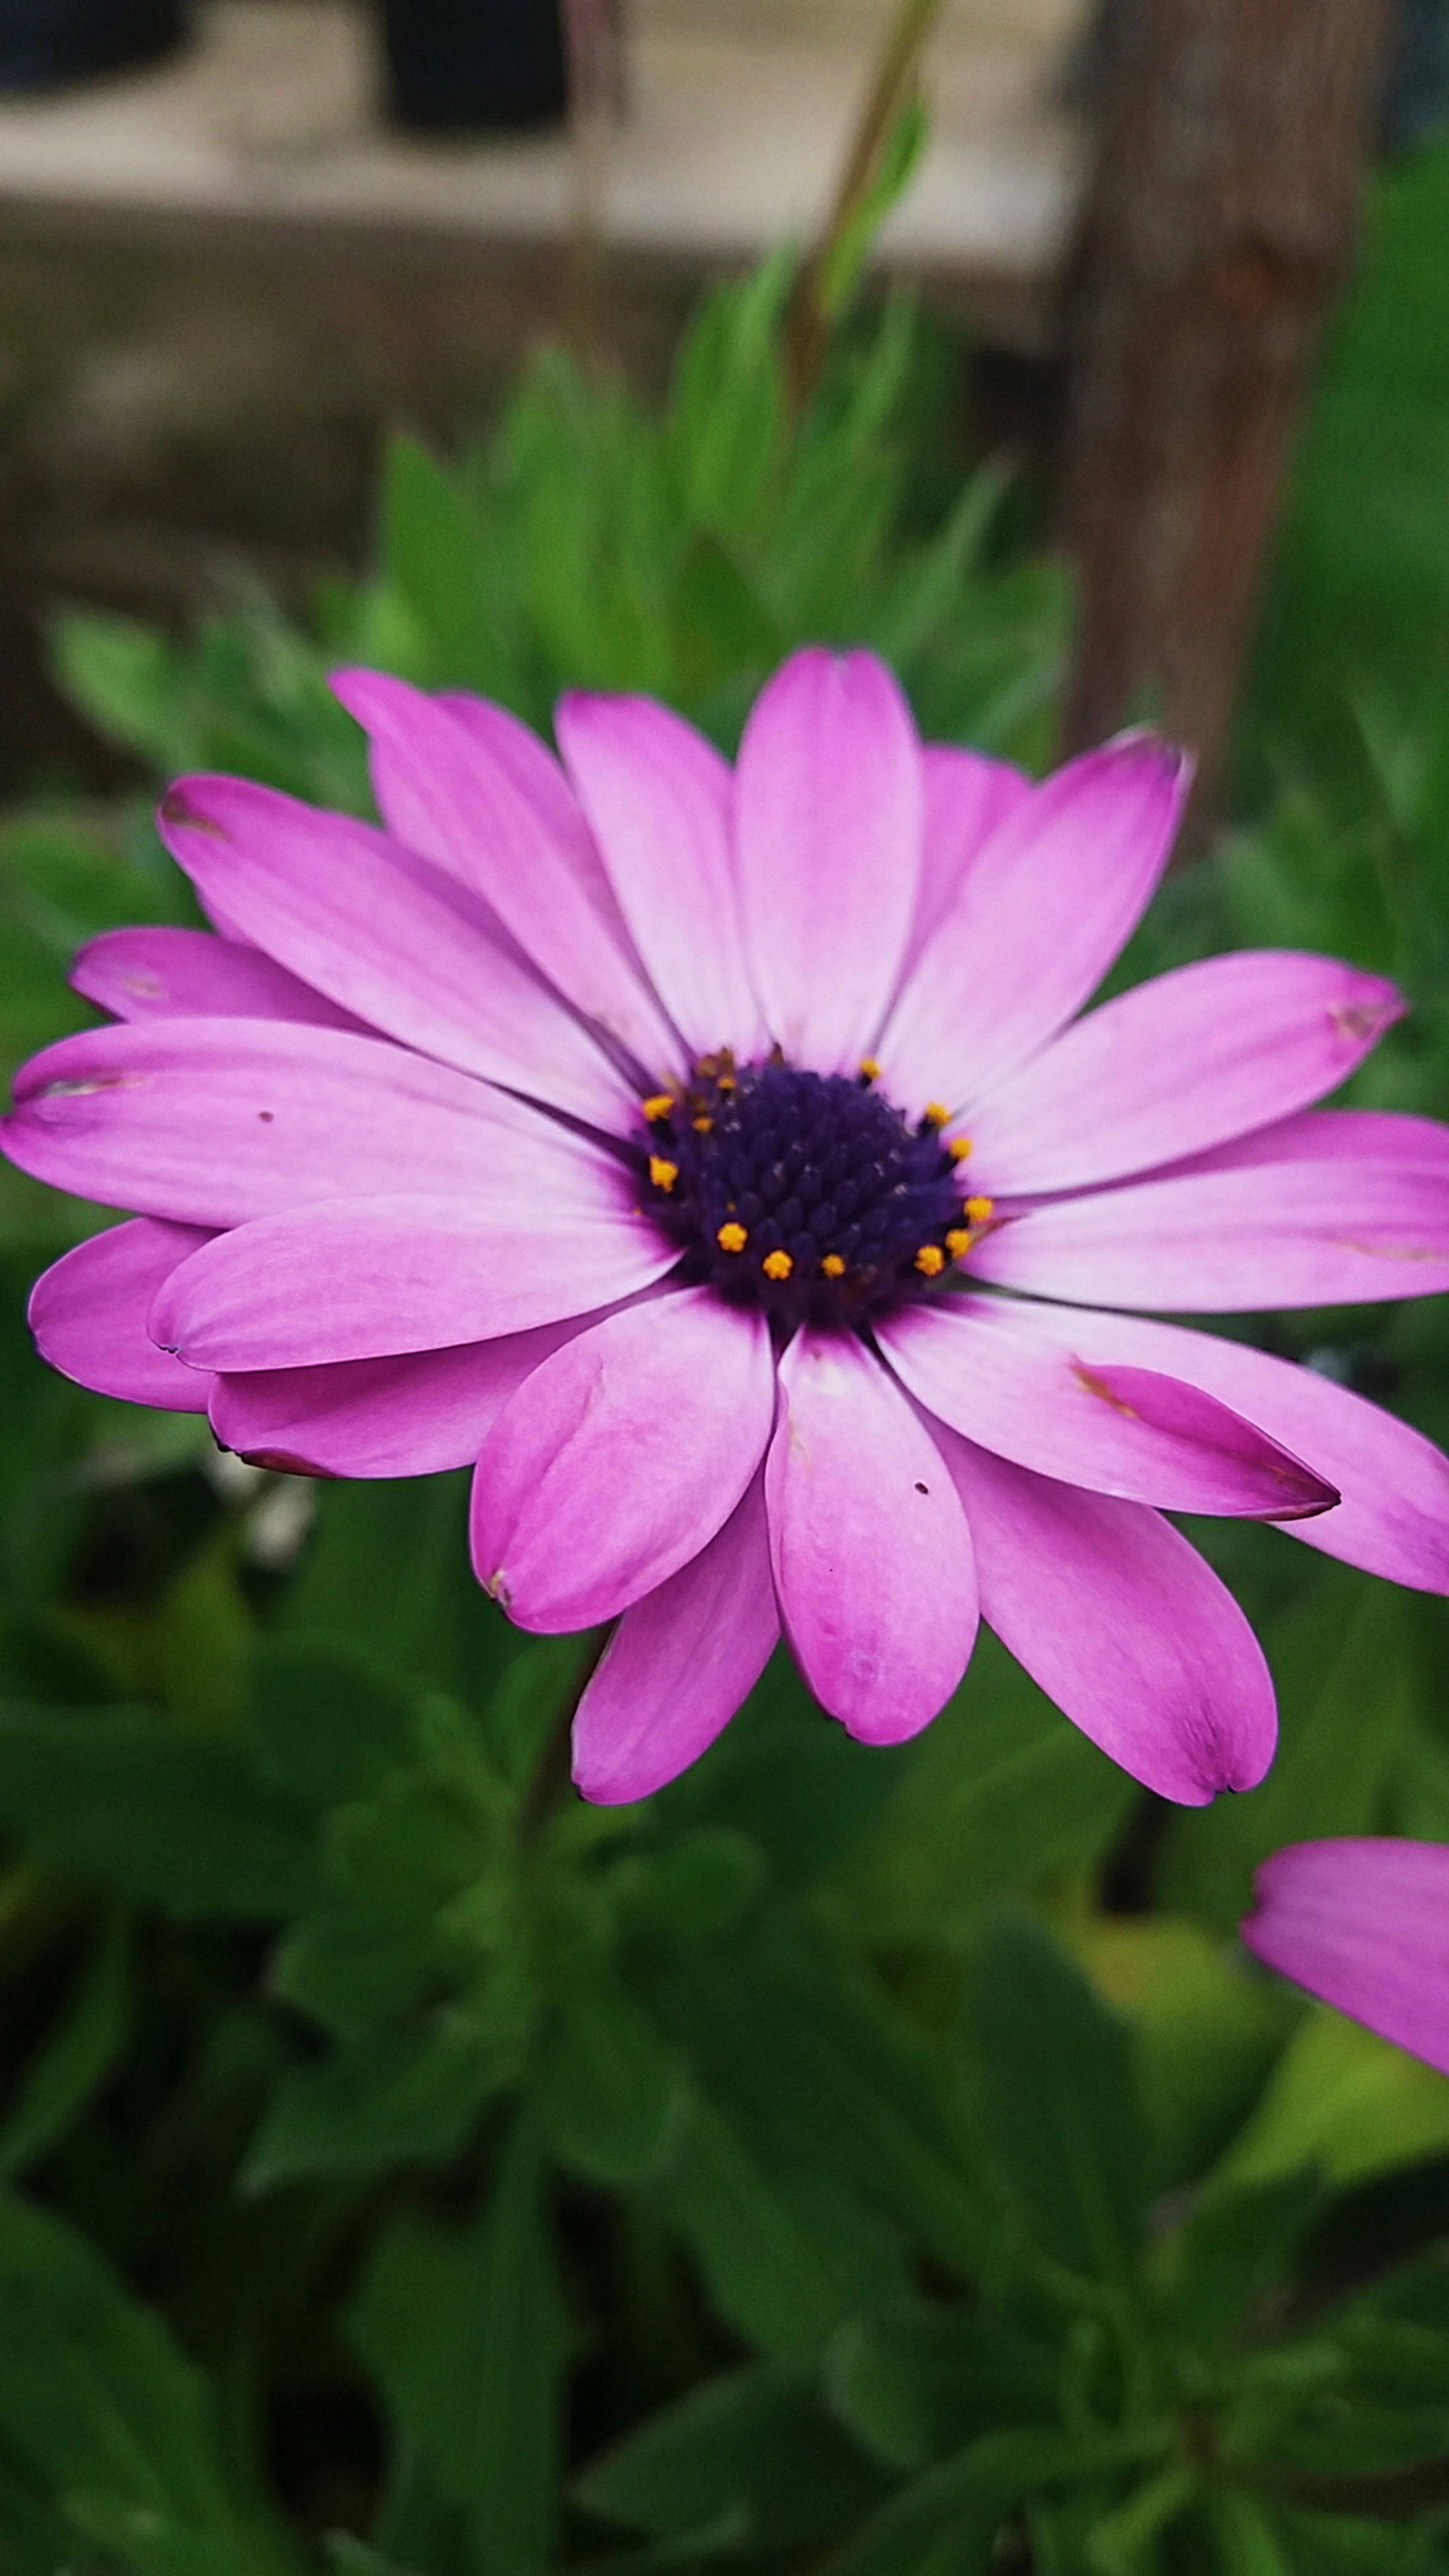 flower, freshness, fragility, petal, flower head, close-up, beauty in nature, growth, in bloom, blossom, purple, nature, springtime, single flower, pink color, plant, botany, vibrant color, focus on foreground, bloom, softness, pink, pollen, outdoors, day, blooming, no people, tranquility, focus